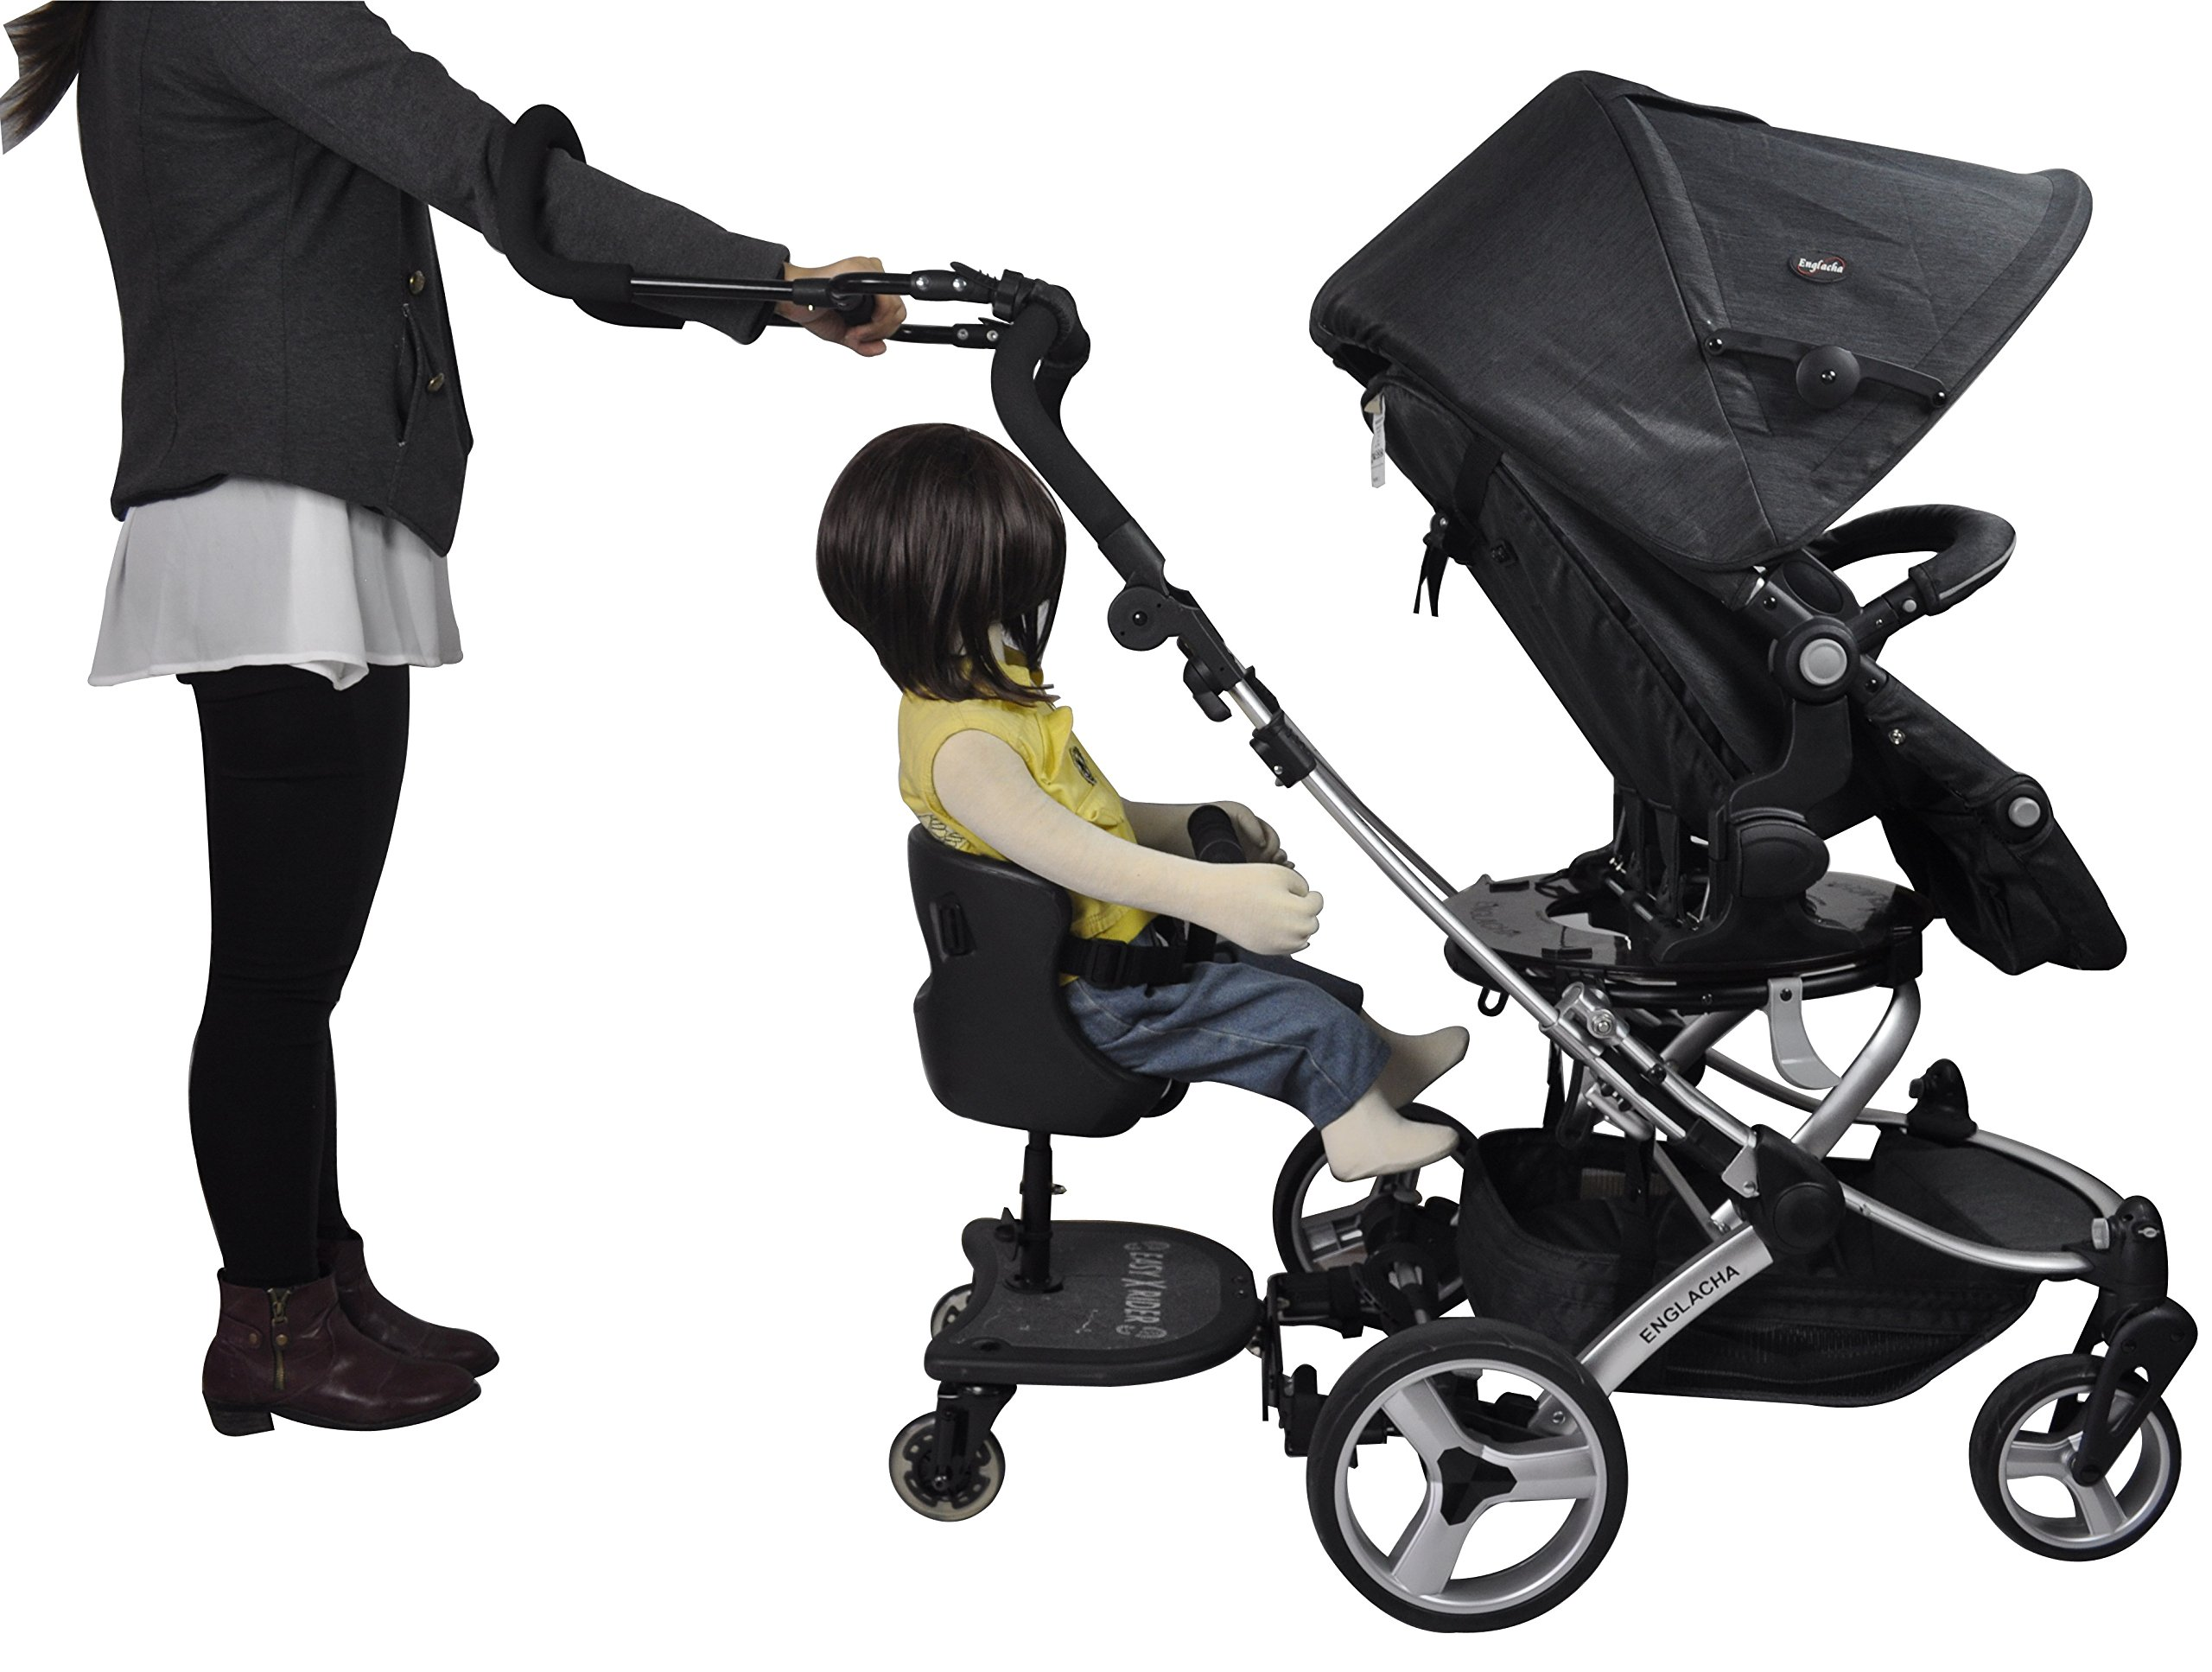 Englacha Cozy Stroll Handle Extension Bar, Black Englacha USA Universal lightweight handle extension bar (aluminum tube) can be installed on any buggy, stroller or pram without extra tools required Allows you control your stroller with just one hand and multitask with your free hand Increases extra at least 12-15 cm space for walking in the back of stroller 6